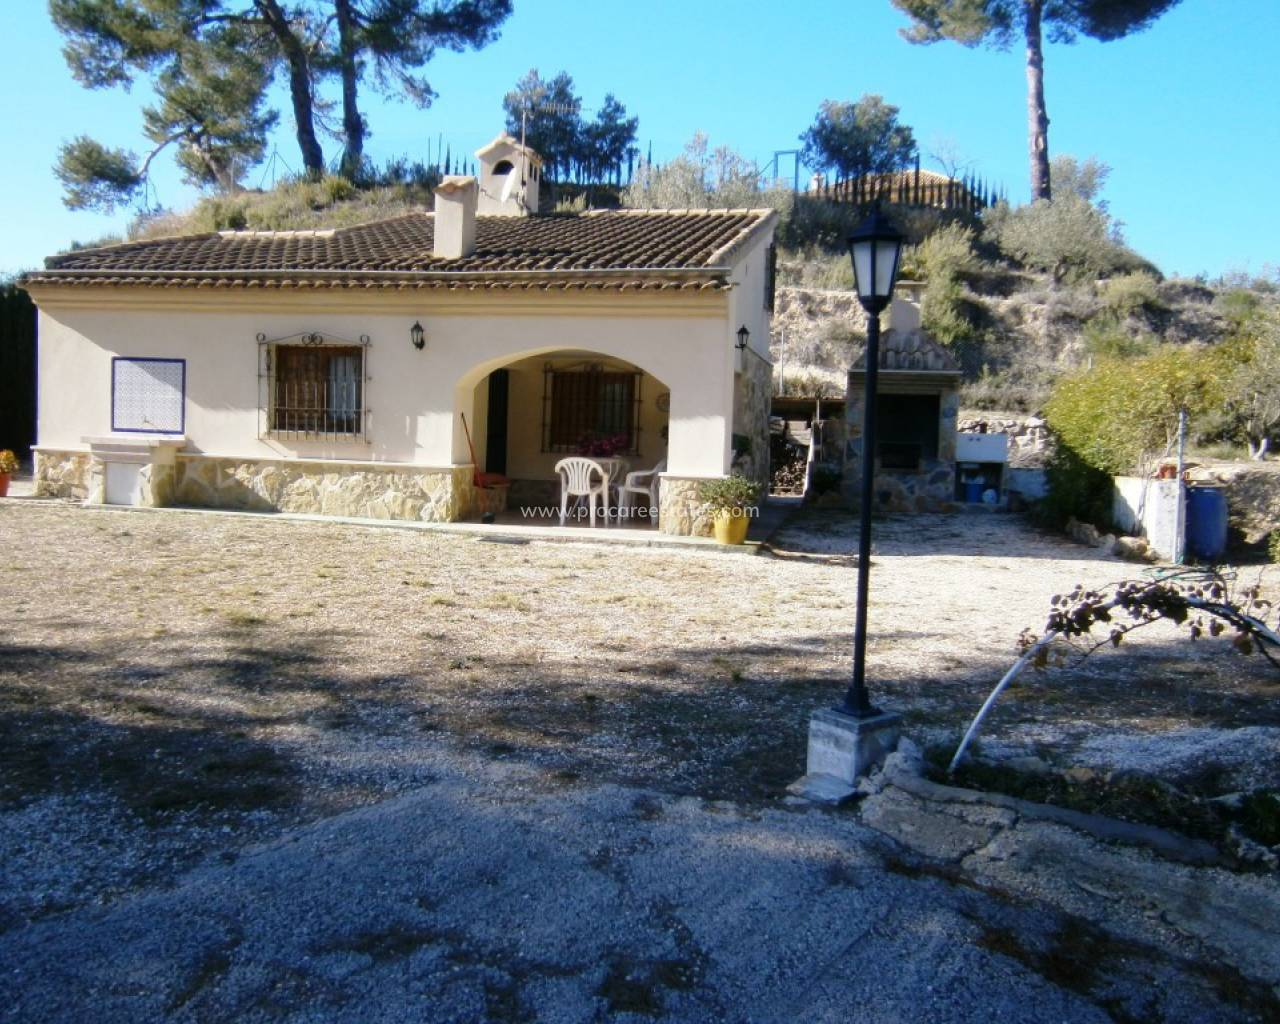 Revente - Country Property - Millena